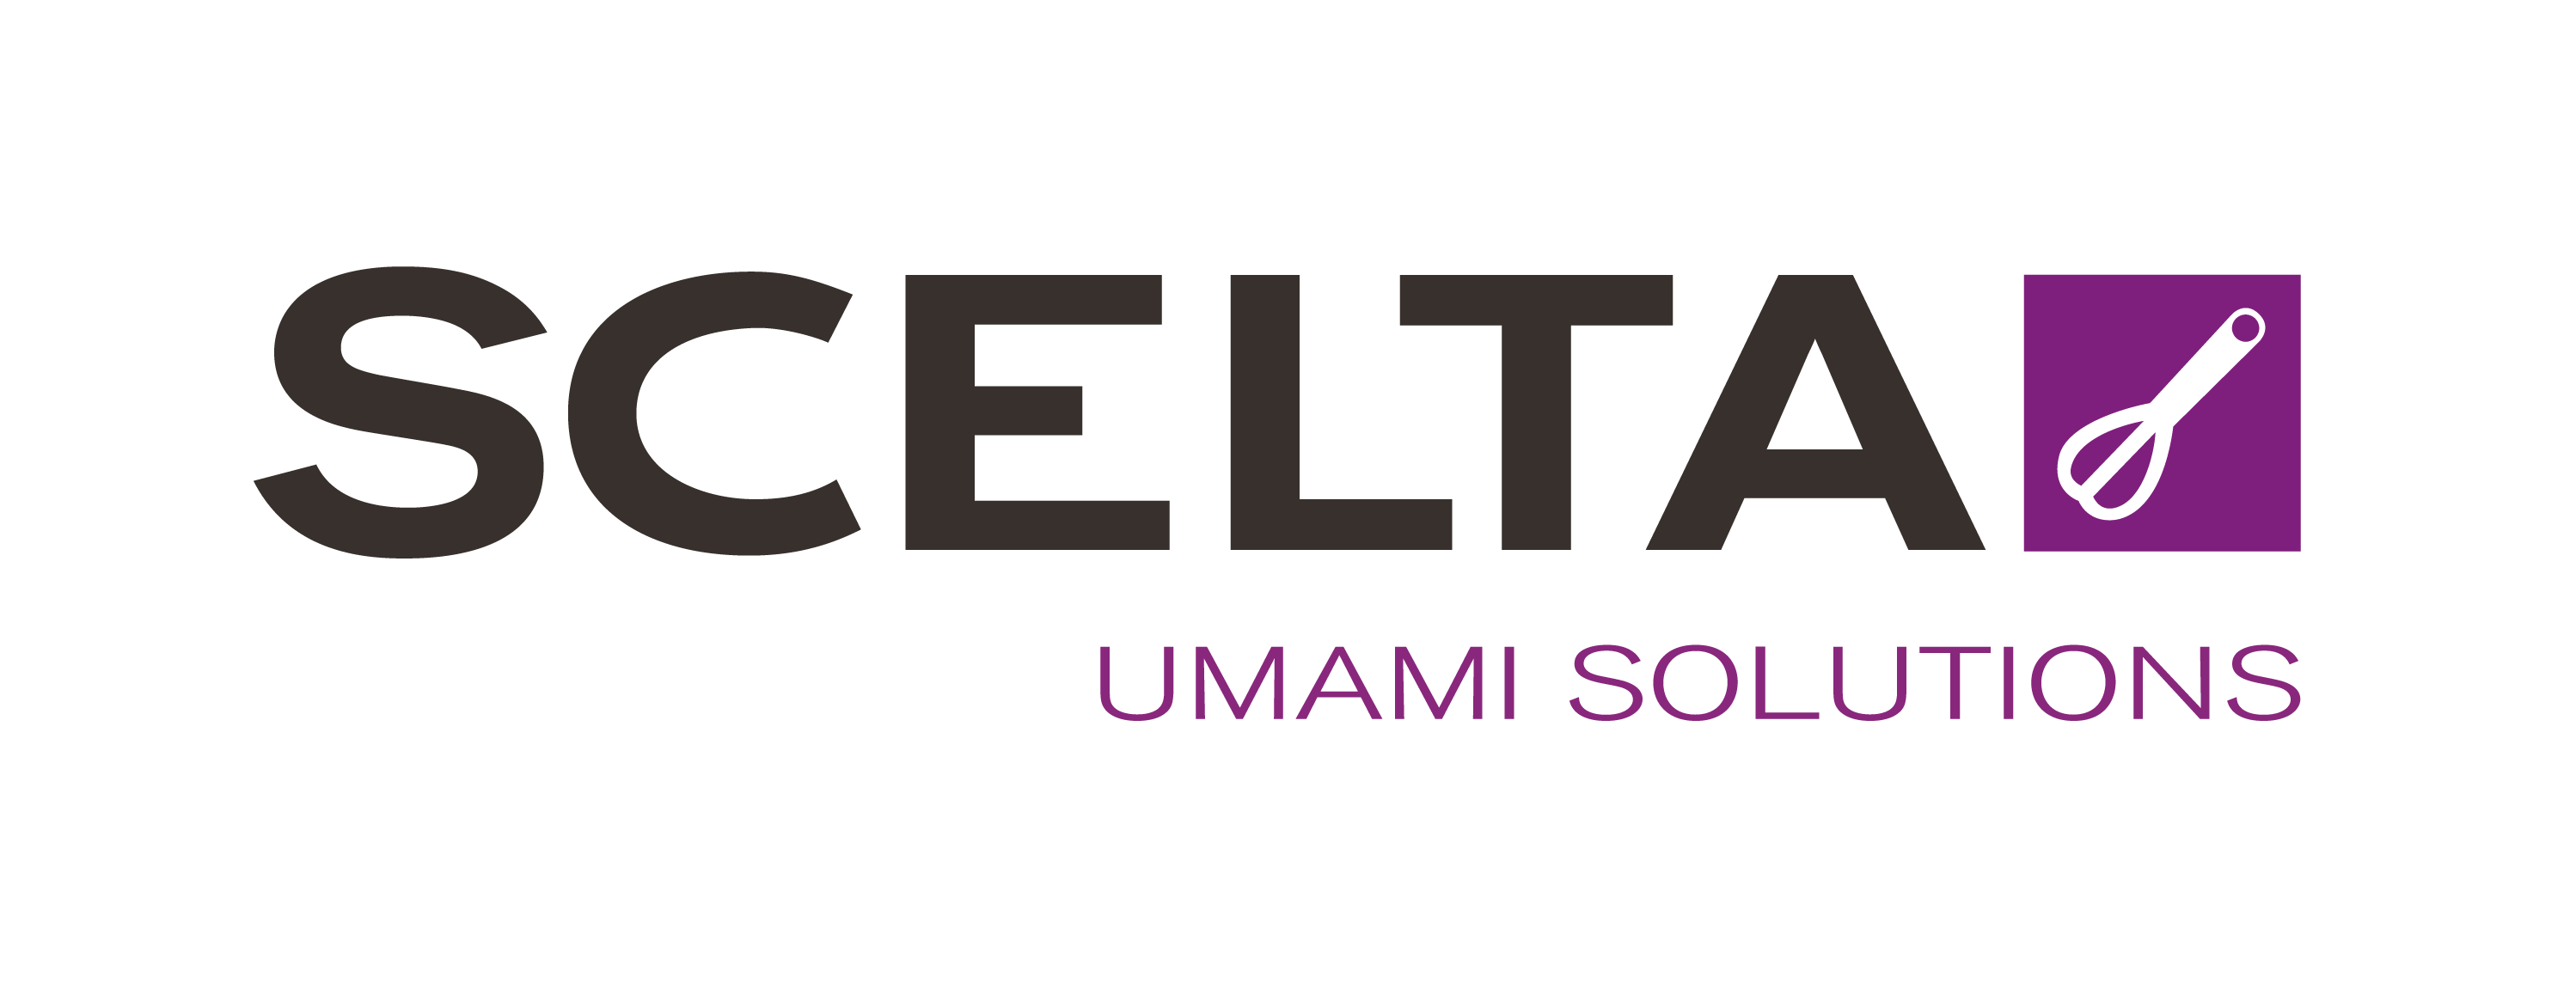 s-RGB SCELTA Umami solutions logo (magic powder background) positif 288 ppi